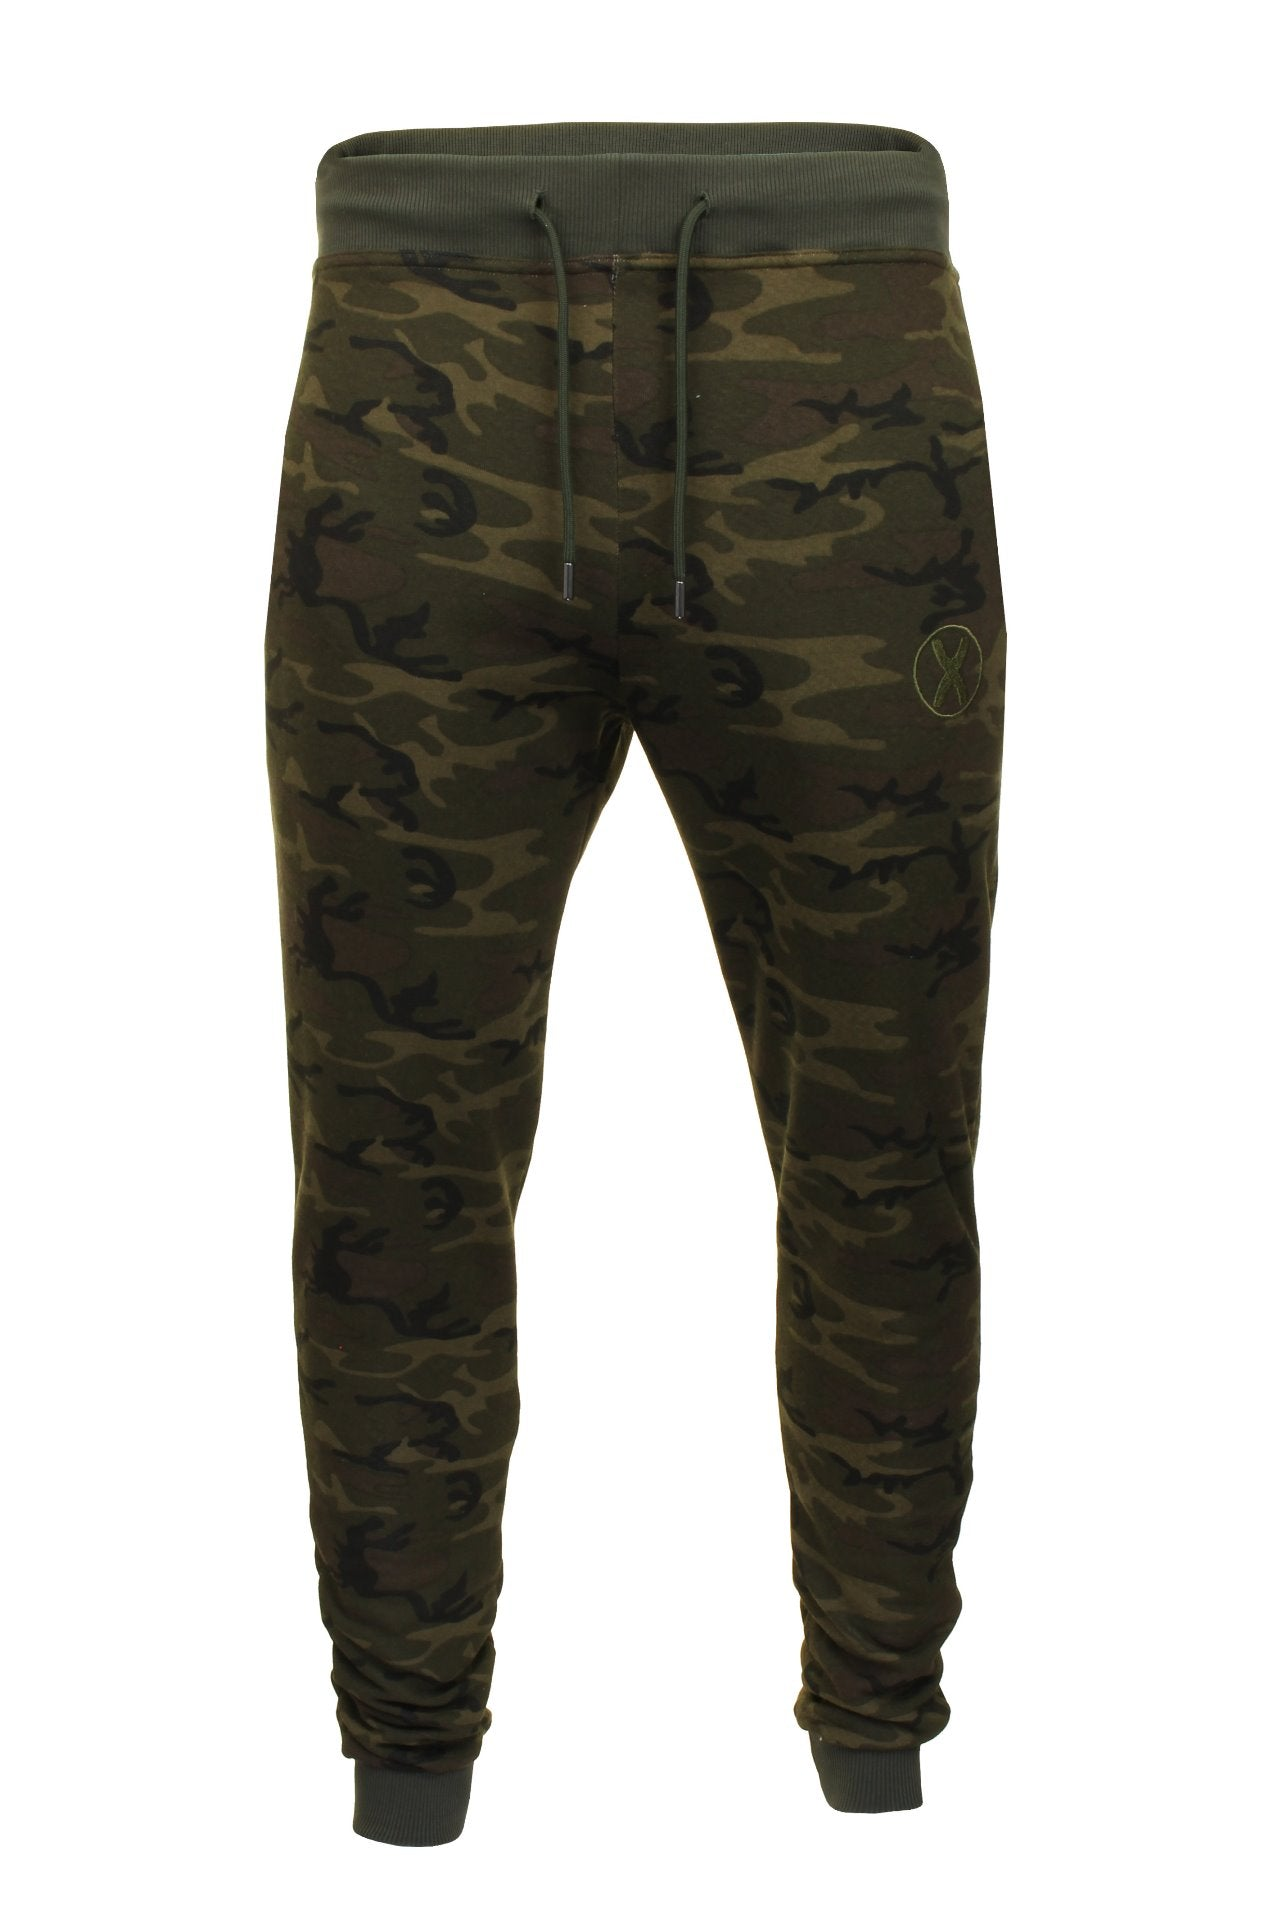 Mens Joggers Slim Fit by Xact-Main Image